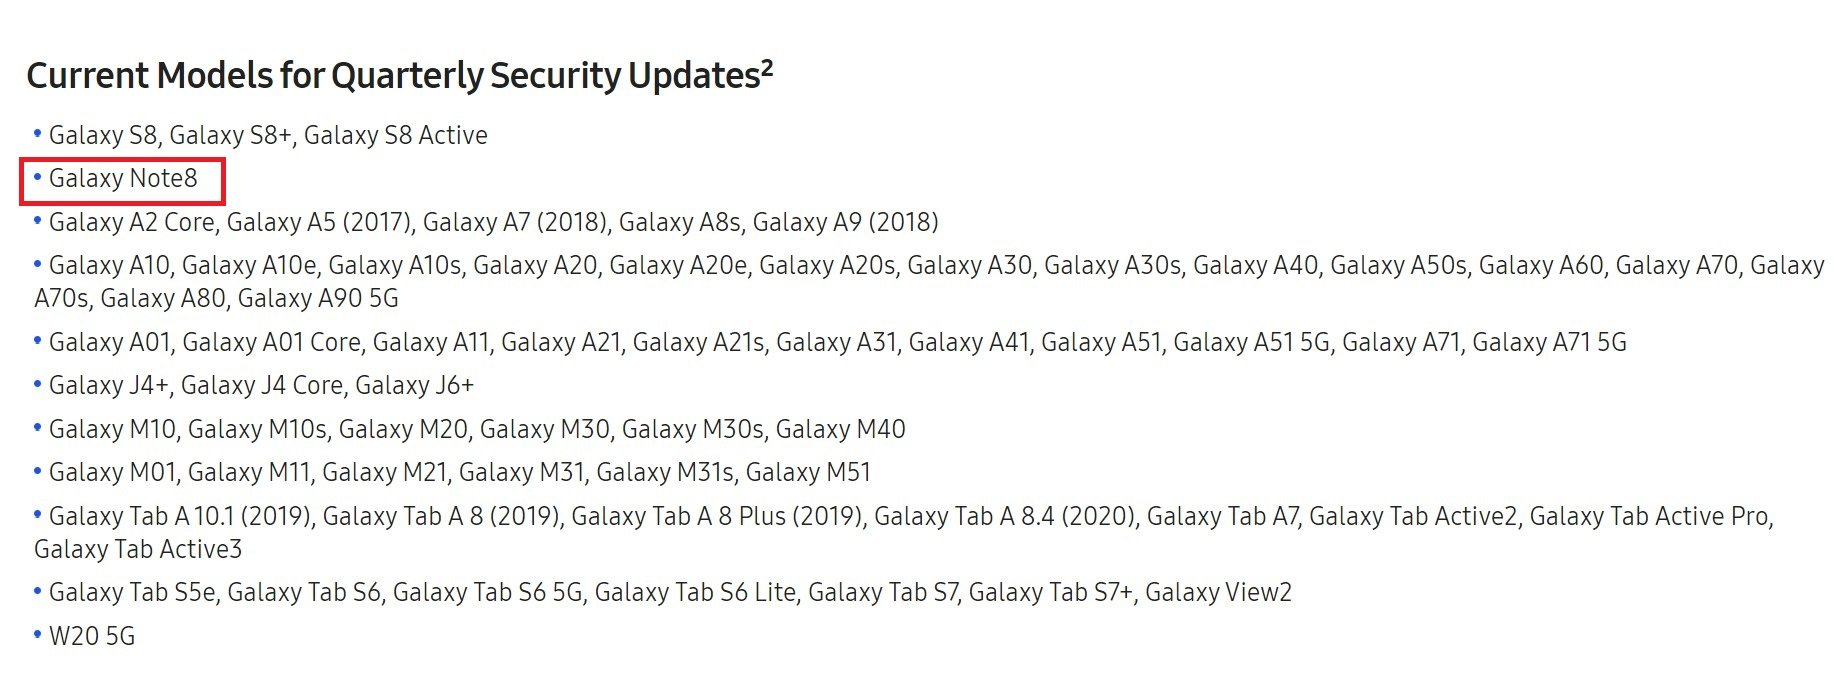 Samsung Quarterly Security Software Update List Galaxy Note 8